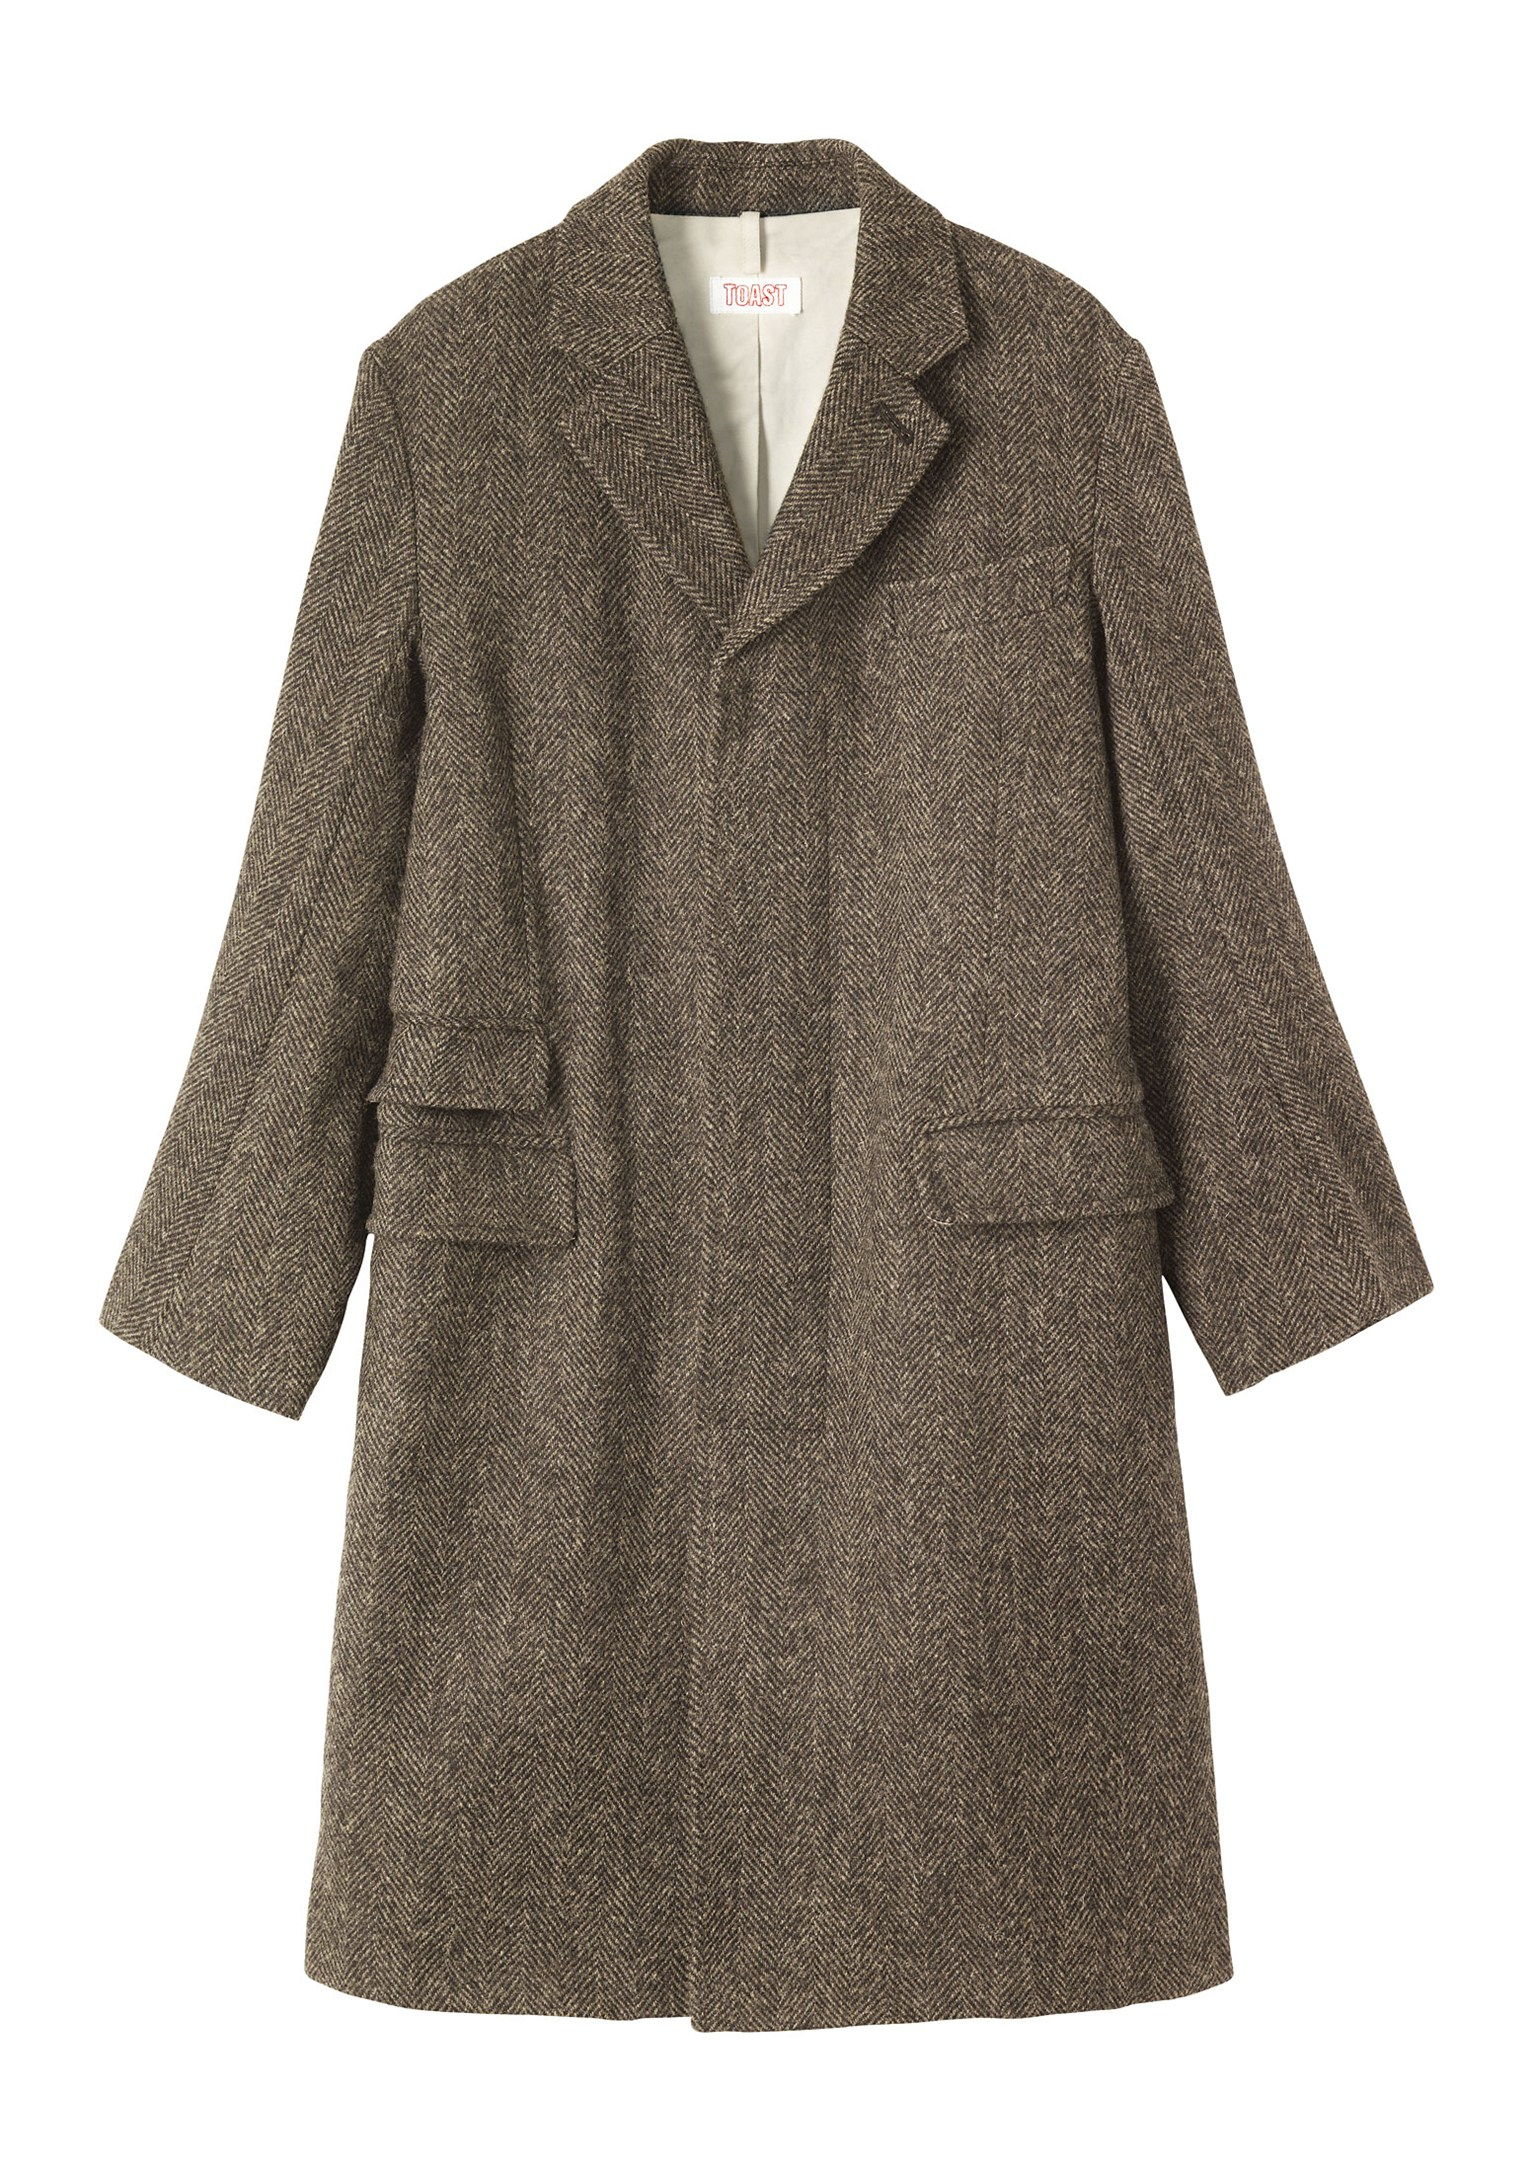 Overcoats for boys